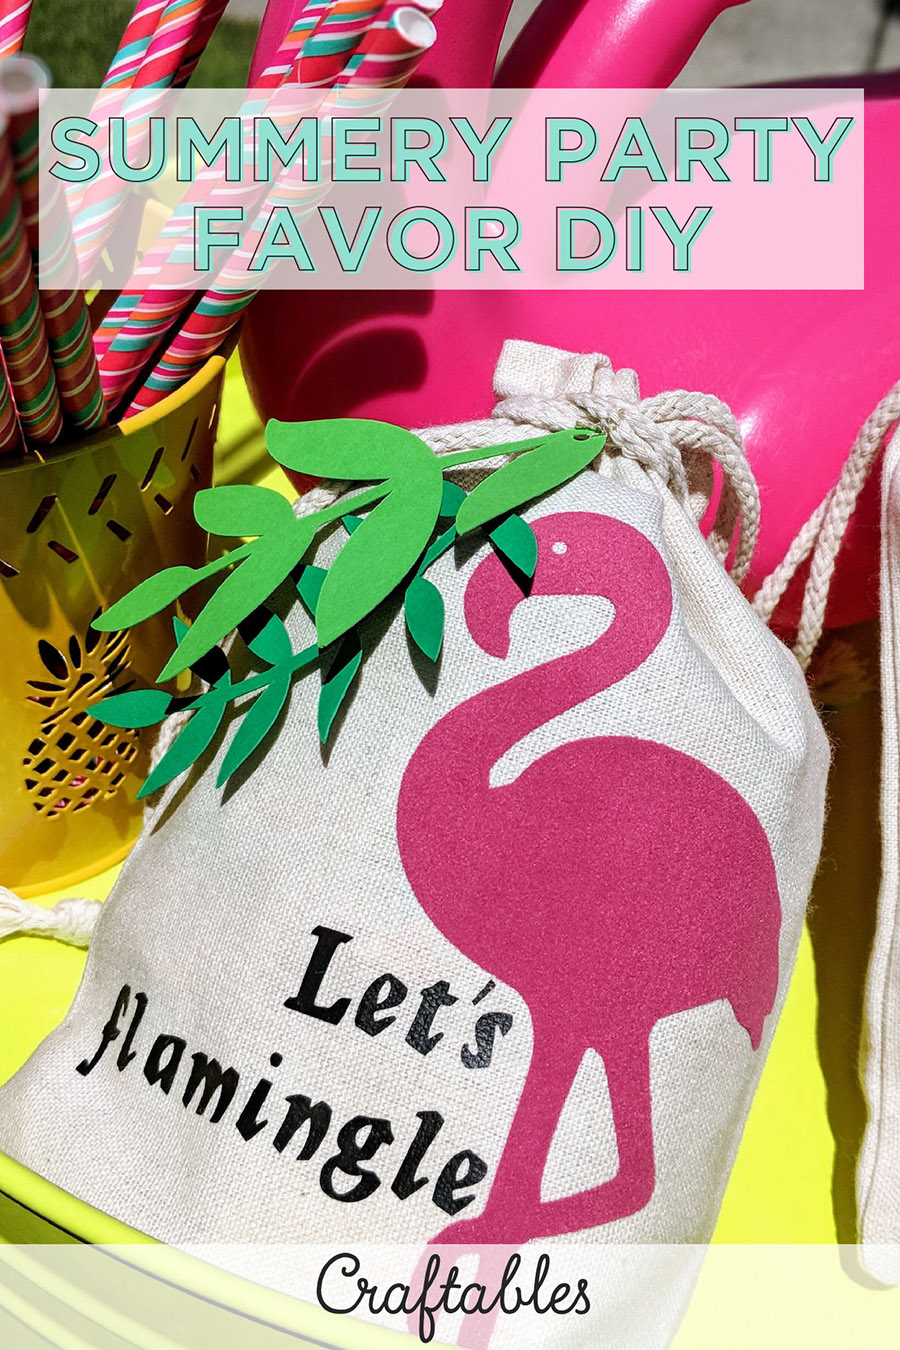 summery-party-favor-diy-02.jpg